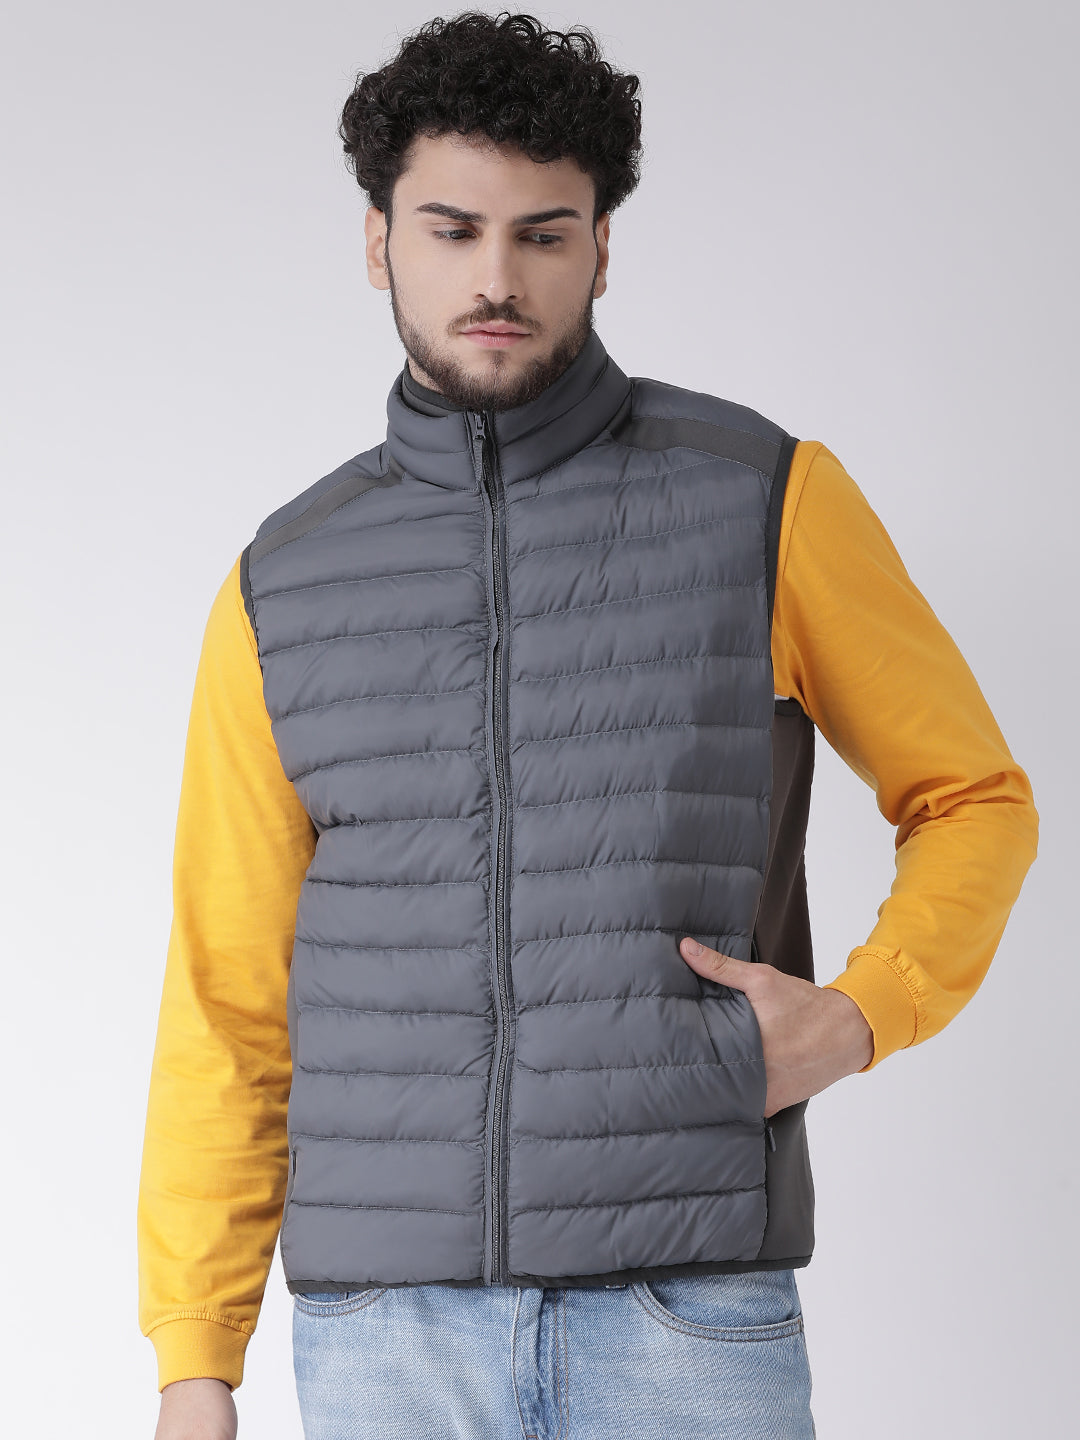 Mettle Charcoal Jacket for Men